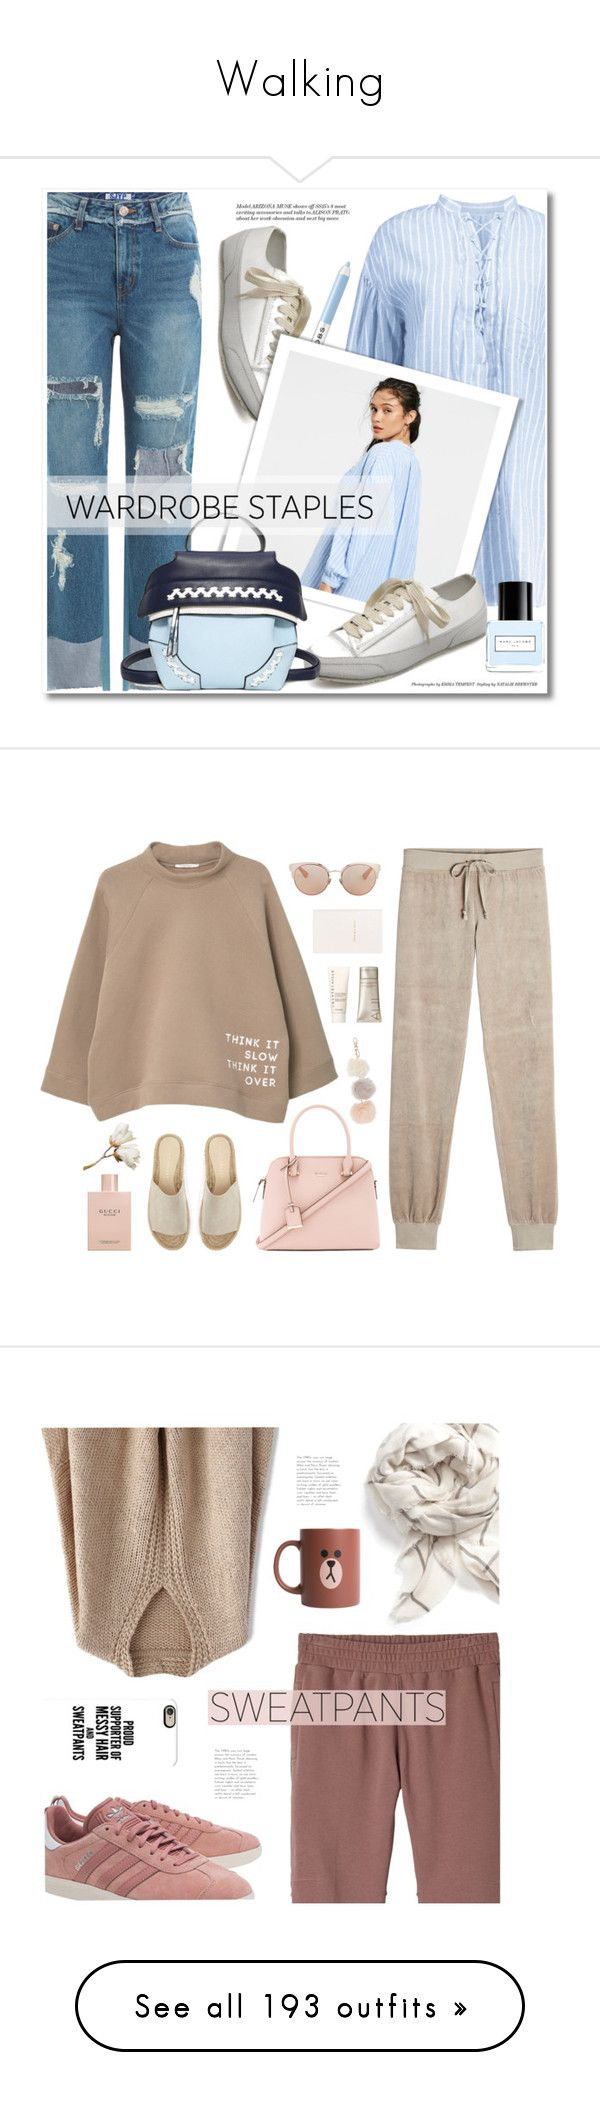 """""""Walking"""" by evgeniavega ❤ liked on Polyvore featuring Marc Jacobs, SJYP, WardrobeStaples, zaful, MANGO, Juicy Couture, Kate Spade, Mint Velvet, Gucci and Christian Dior"""